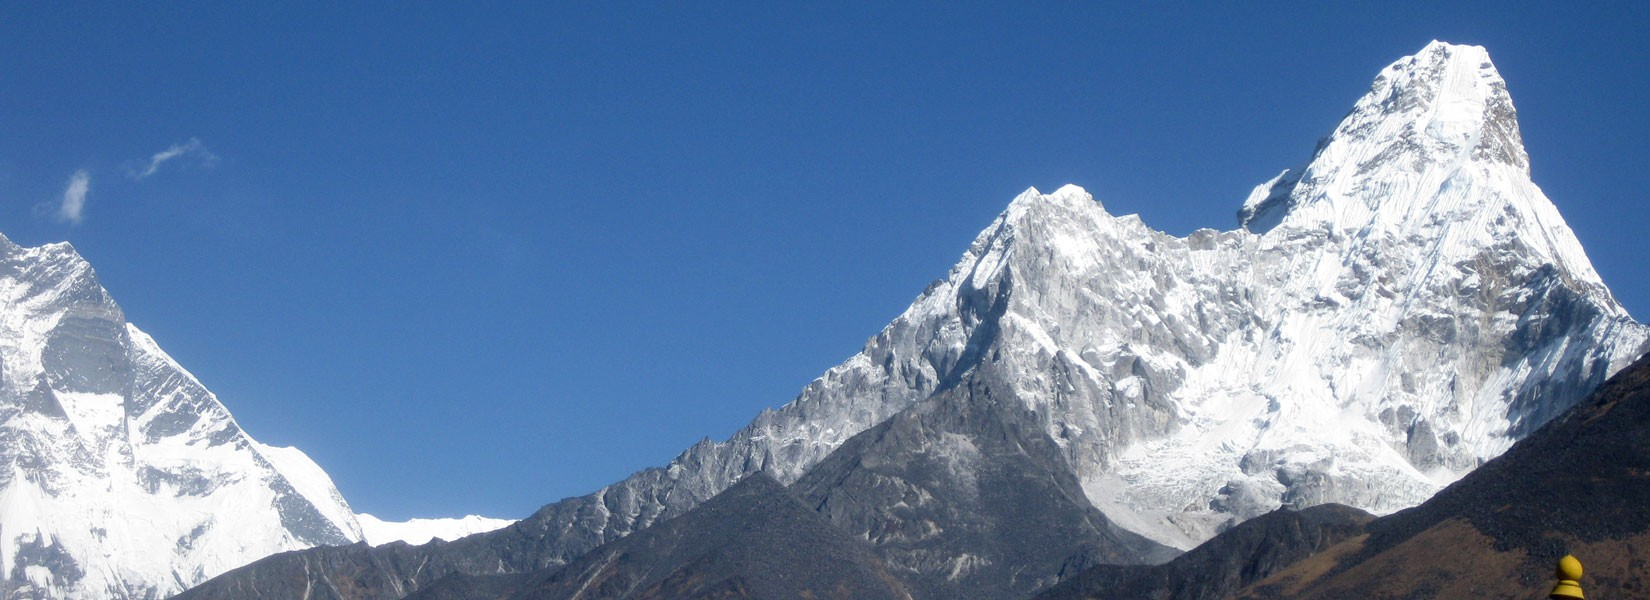 3 Peaks in Everest Region